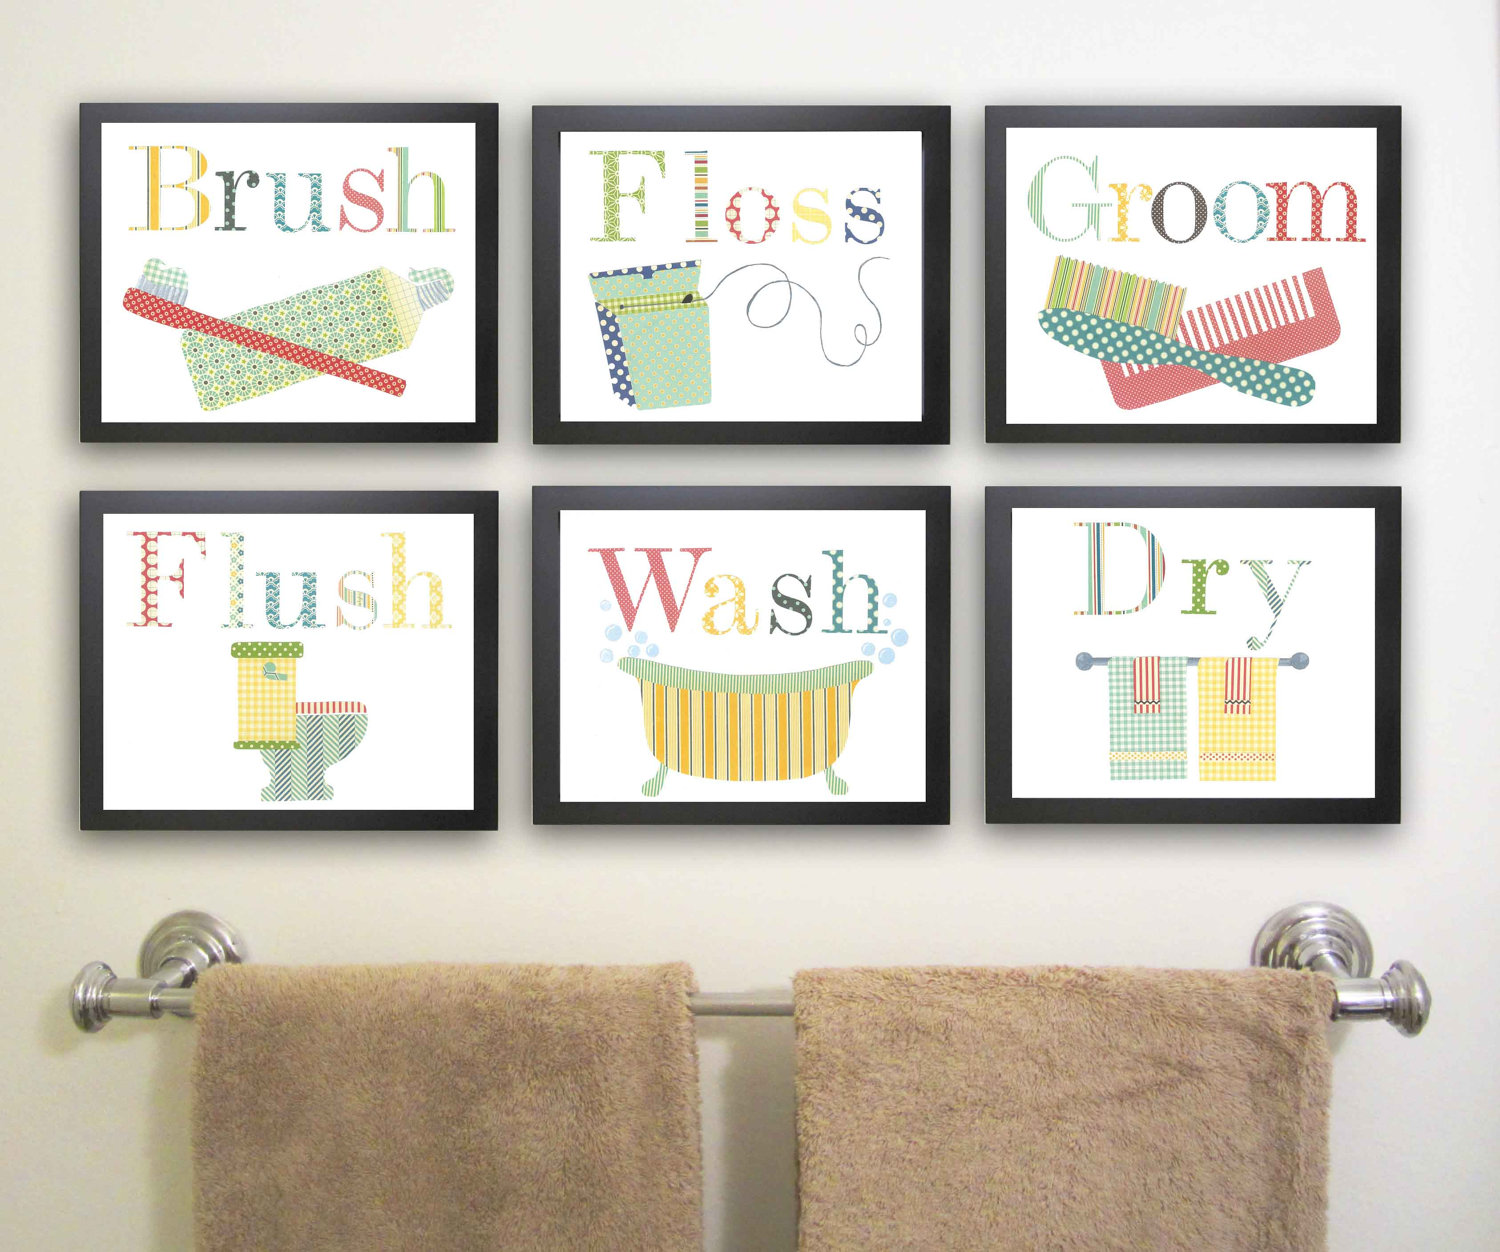 Bathroom wall art decorating tips inoutinterior for Bathroom wall designs